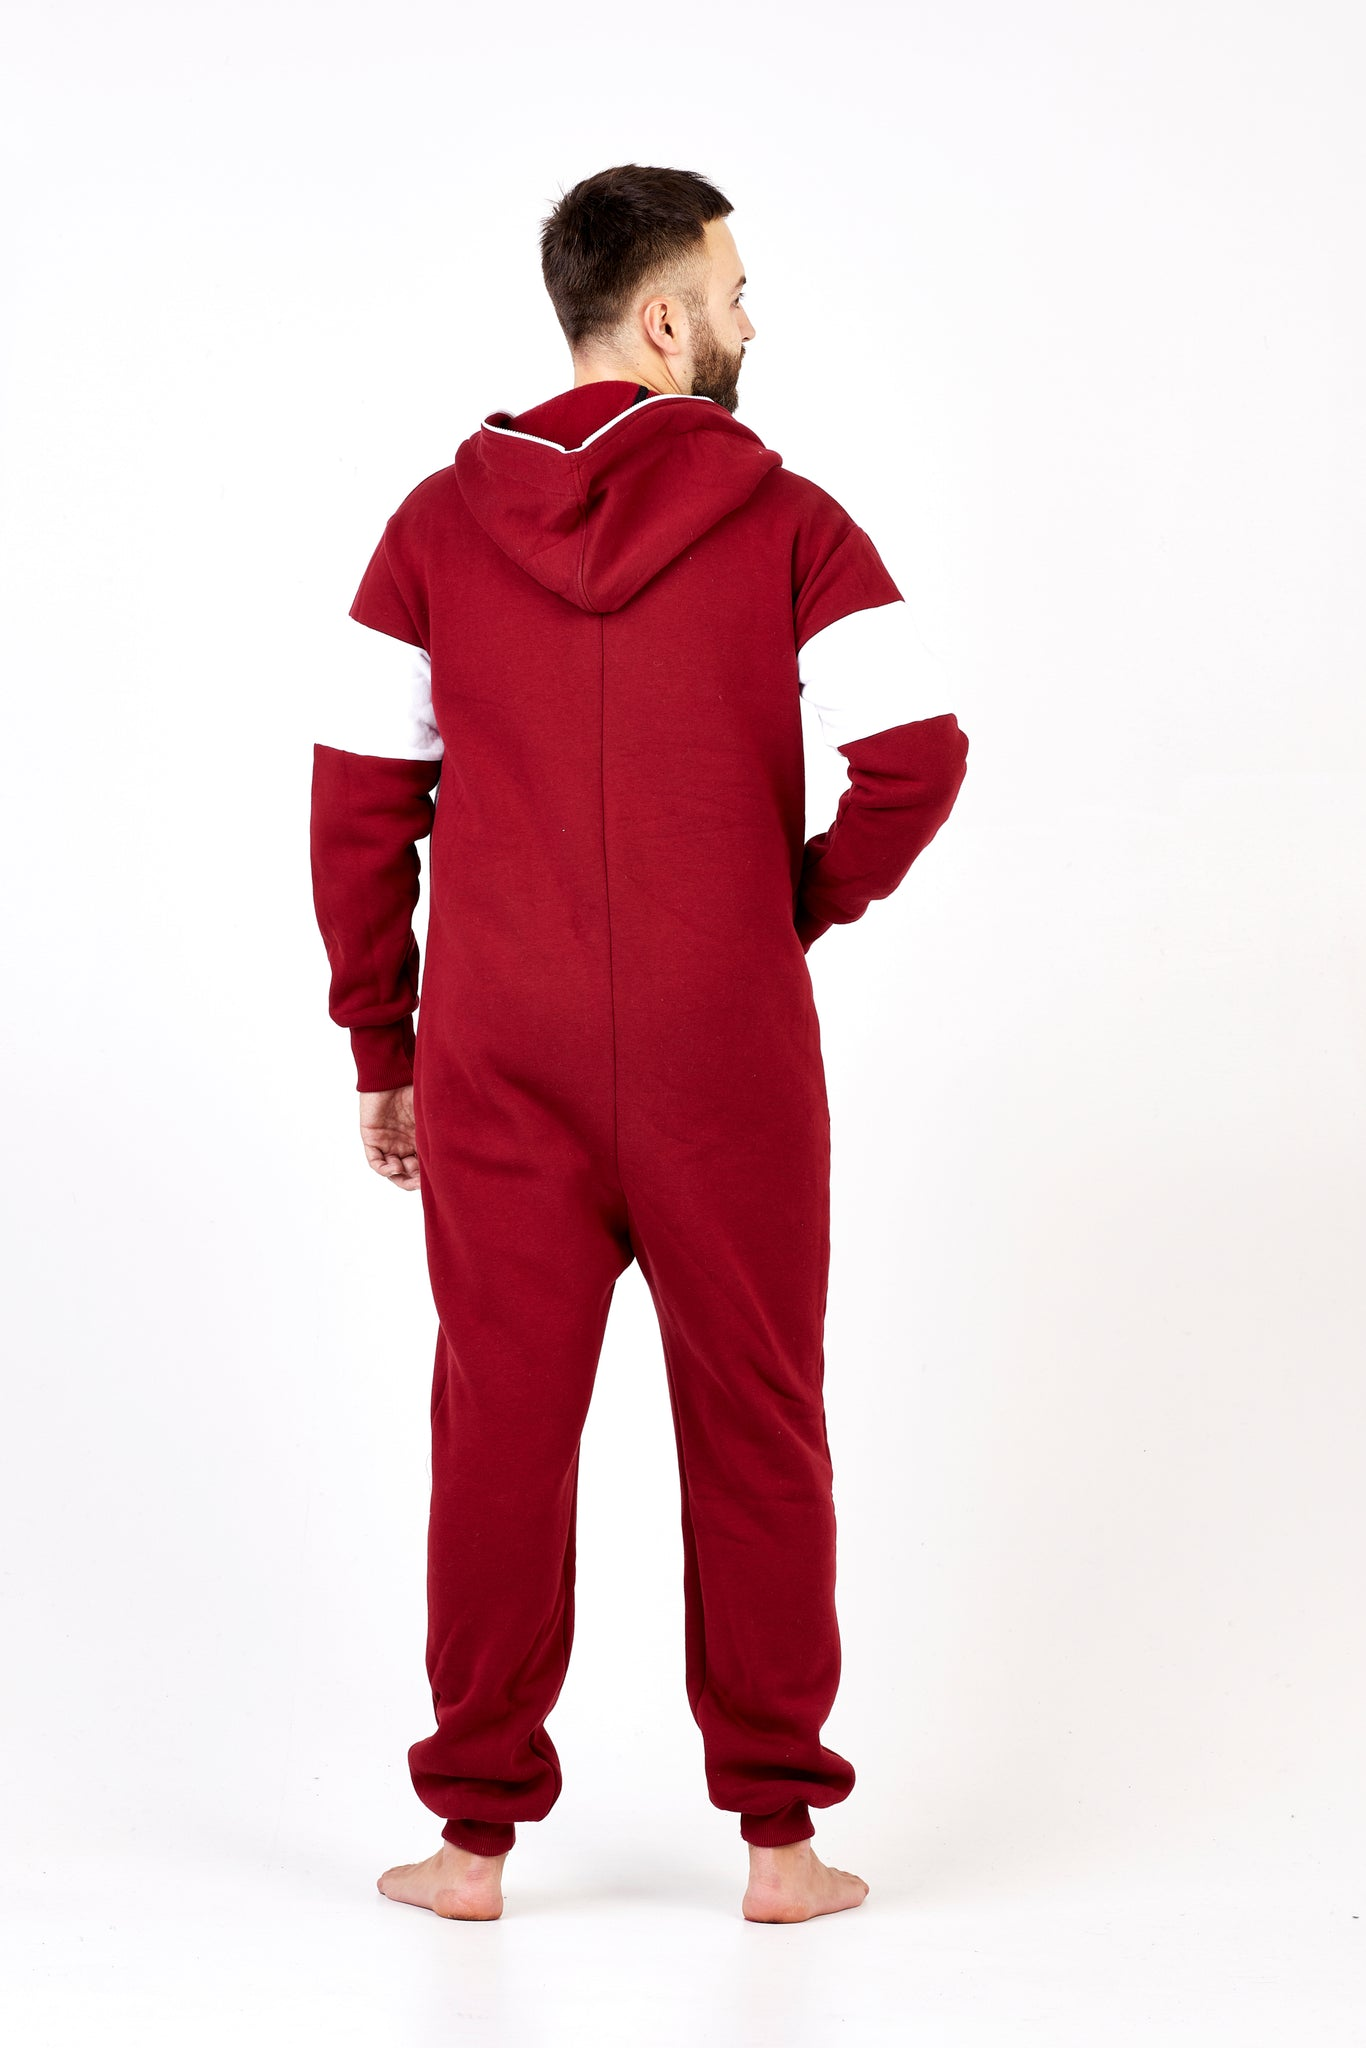 men burgundy onesie latvia riga